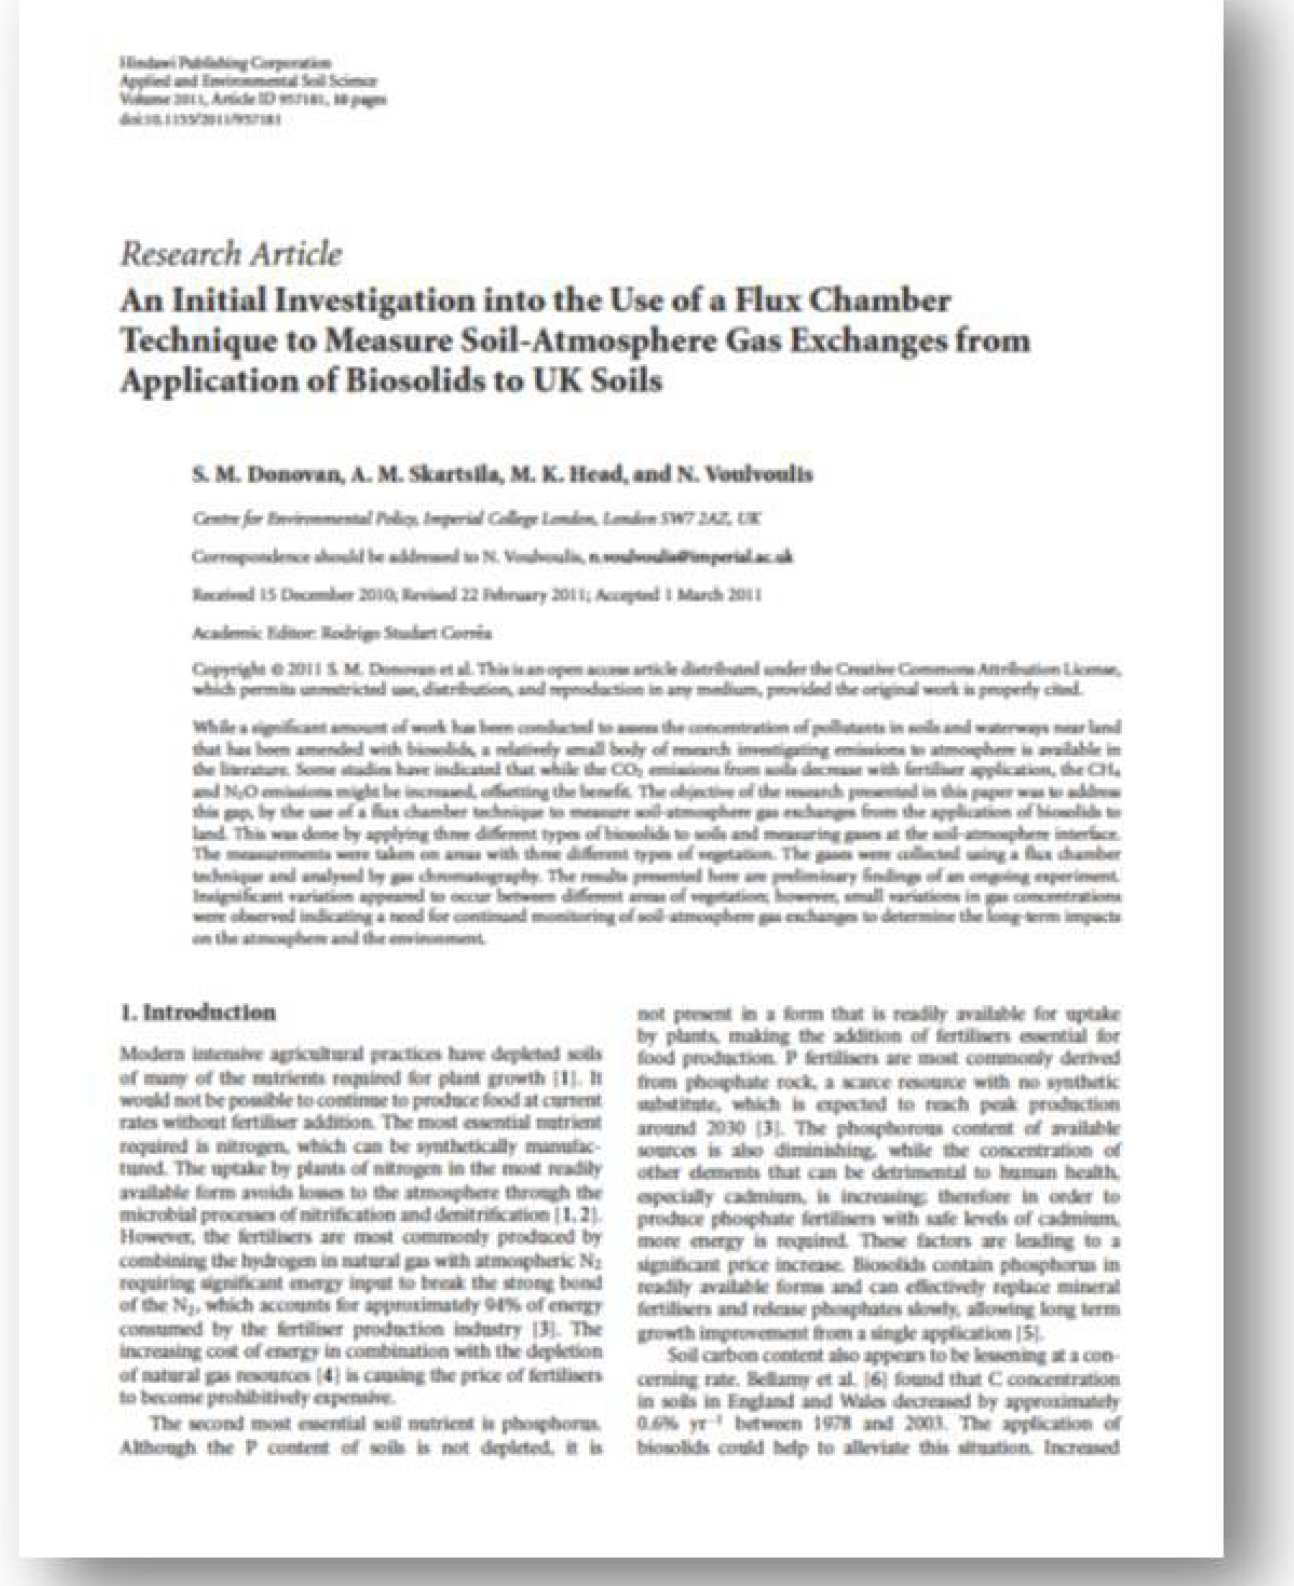 An Initial Investigation into the Use of a Flux Chamber Technique to Measure Soil-Atmosphere Gas Exchanges from Application of Biosolids to UK Soils